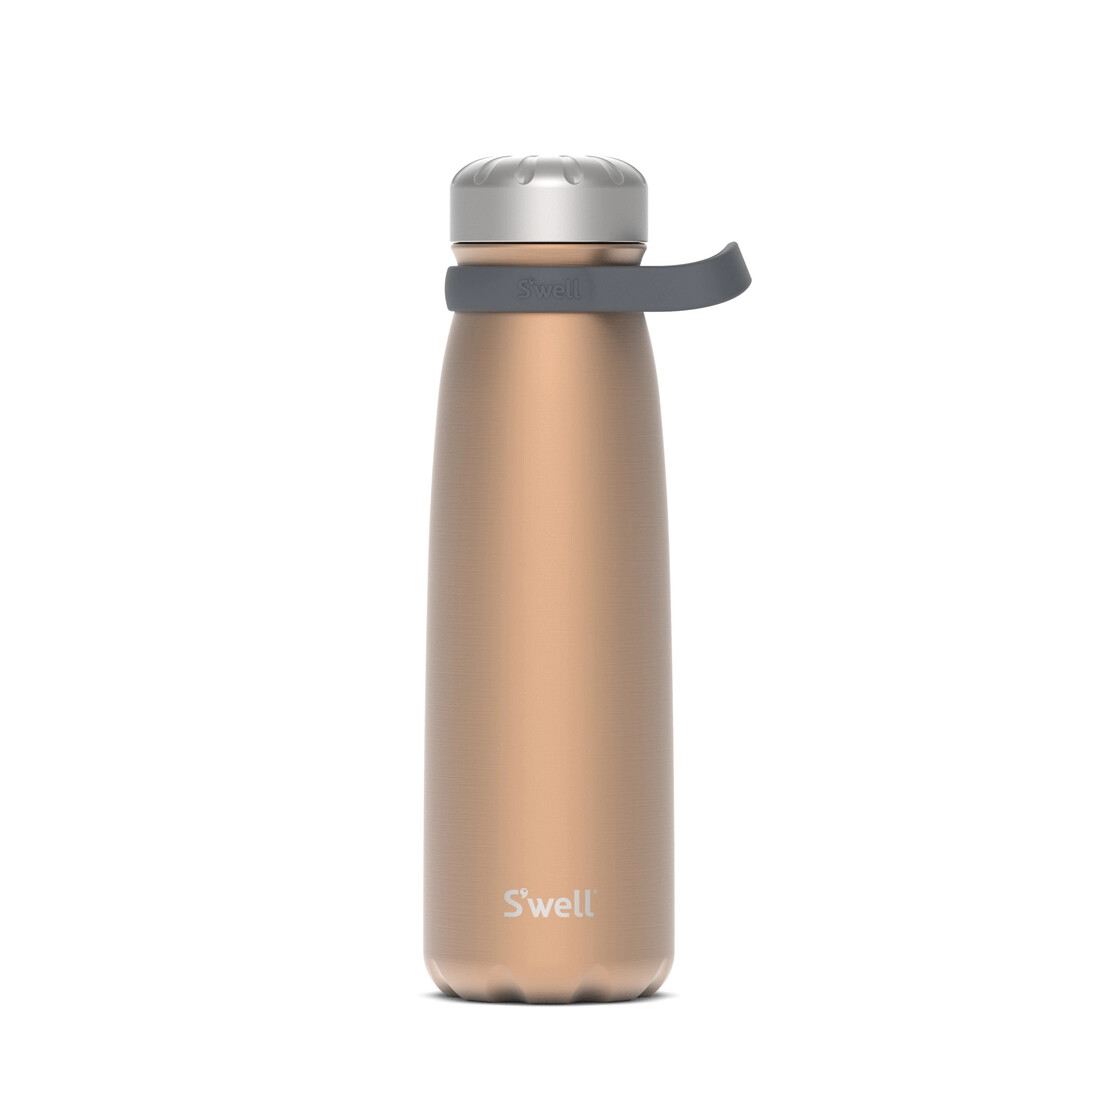 Swell, 40oz, Stainless Steel Traveler, Pyrite